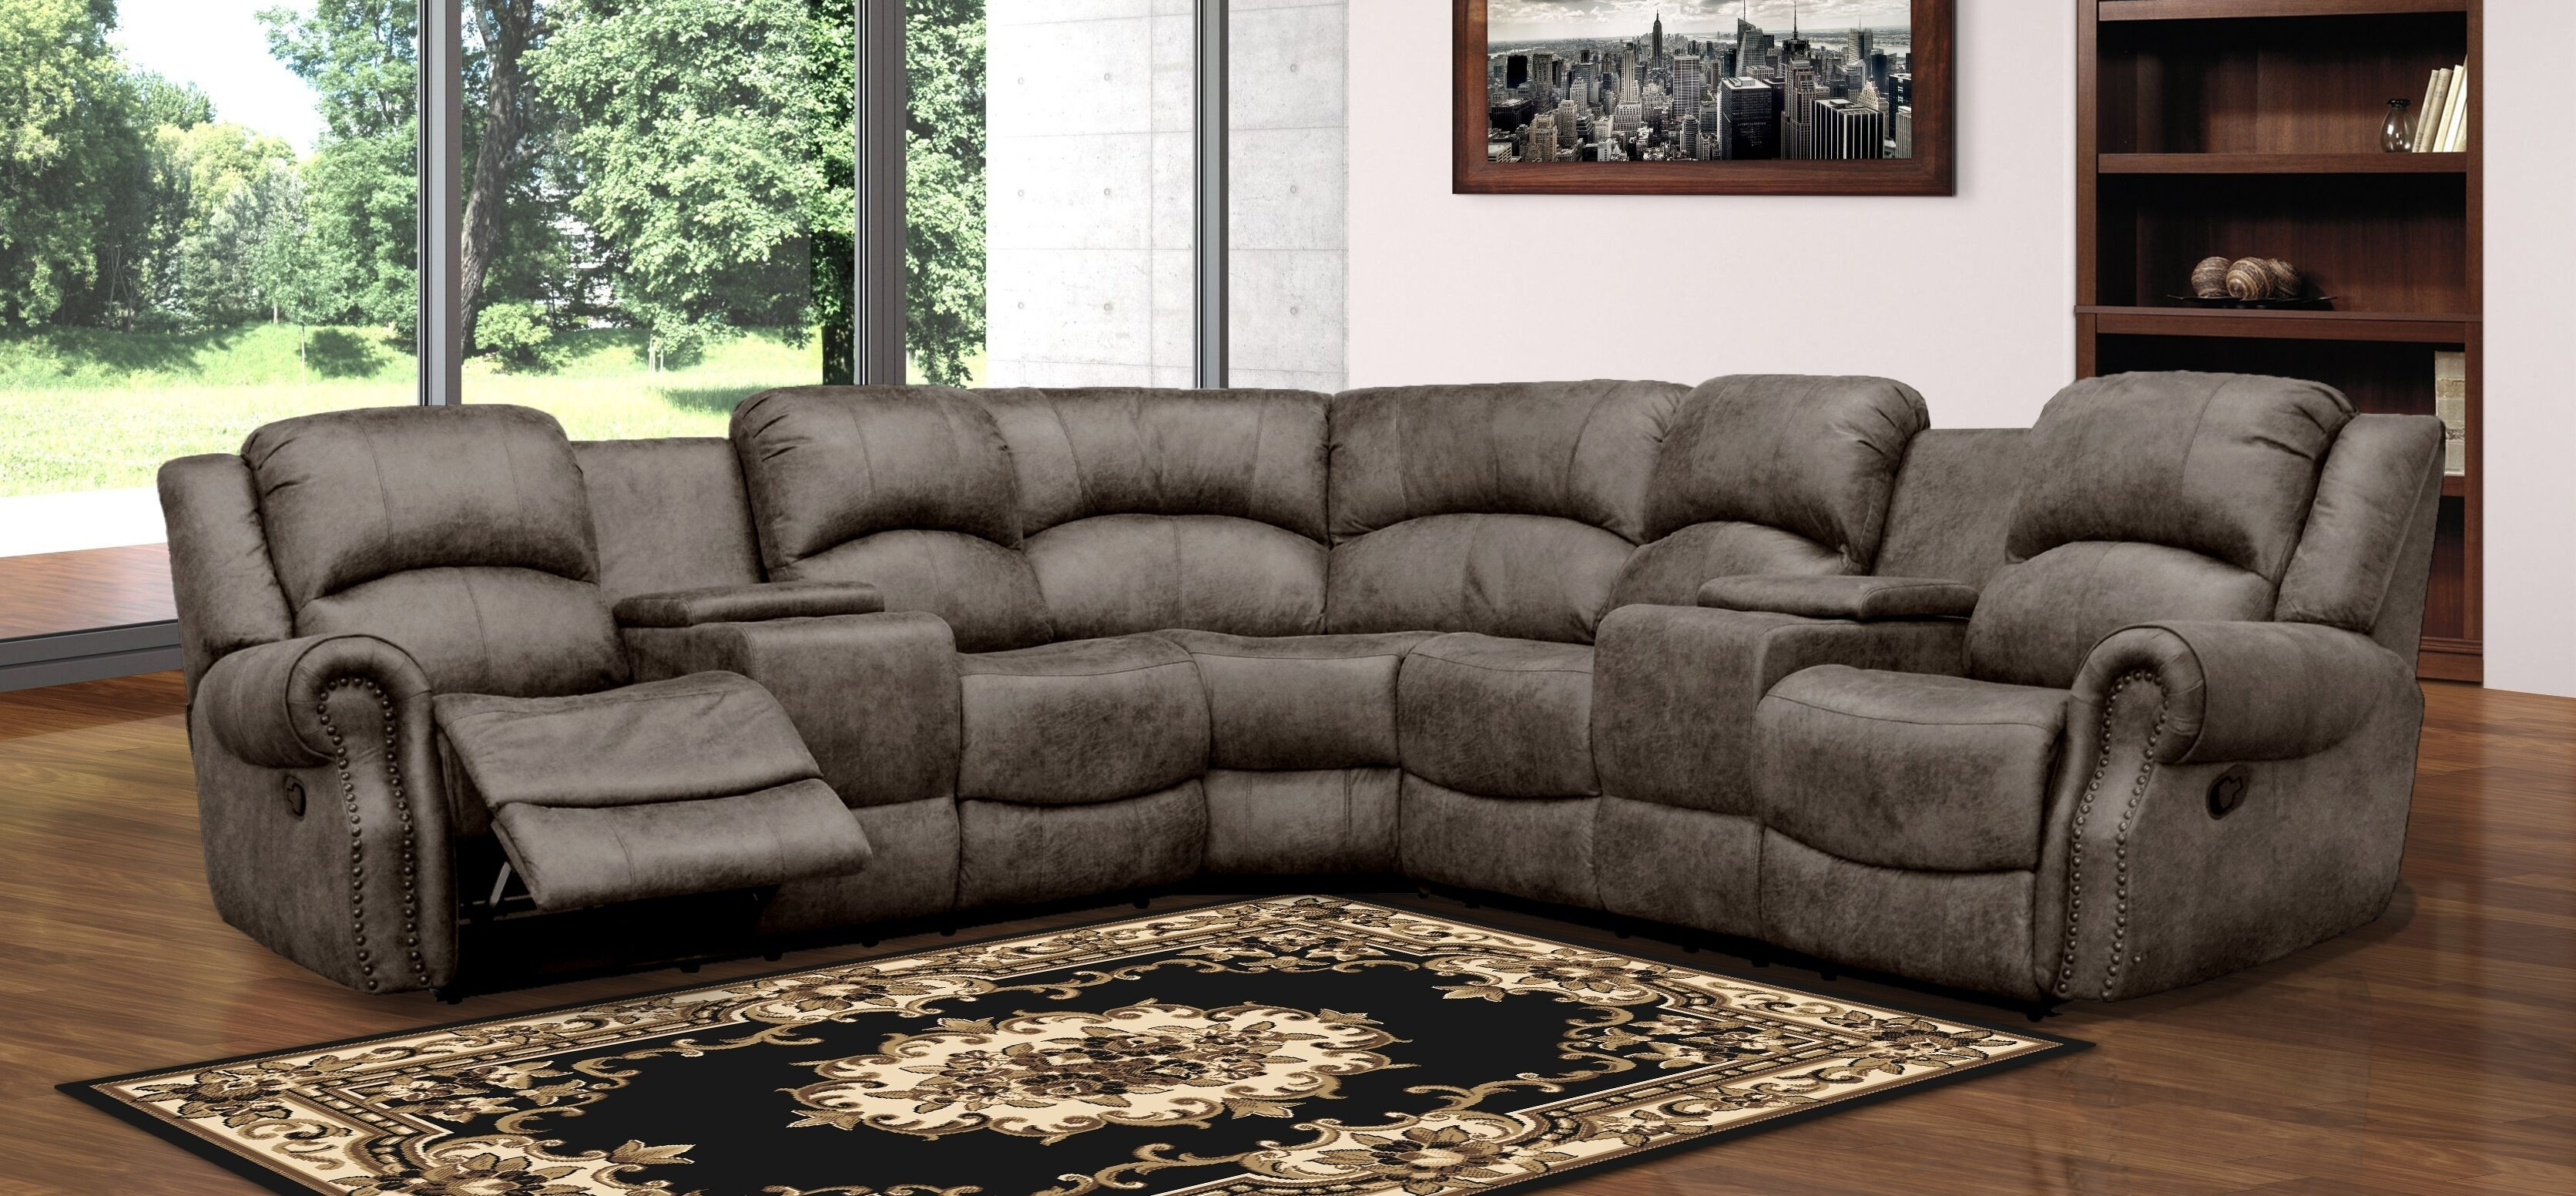 Furniture Clearance Center | Motion Groups regarding Waylon 3 Piece Power Reclining Sectionals (Image 10 of 30)